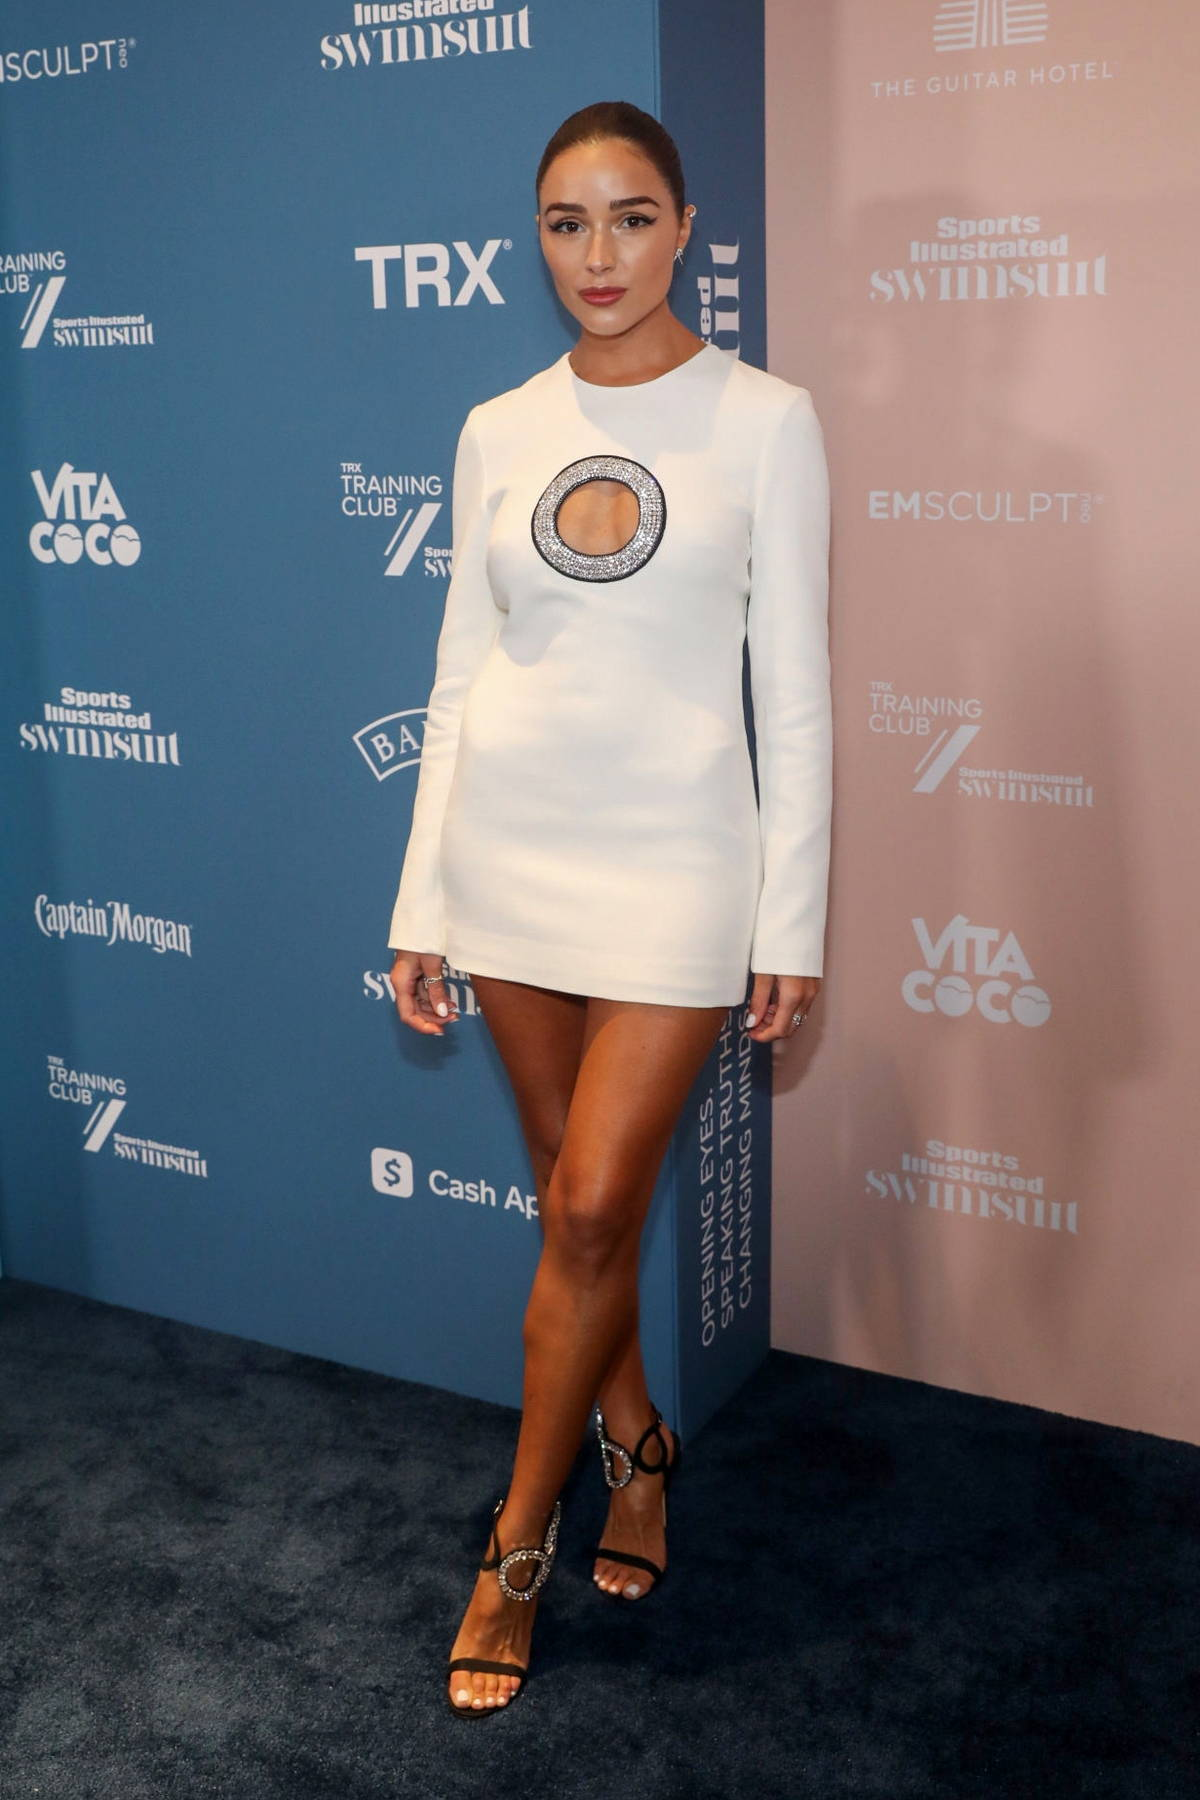 Olivia Culpo attends the Sports Illustrated Swimsuit 2021 Issue Concert at Hard Rock Live in Hollywood, Florida